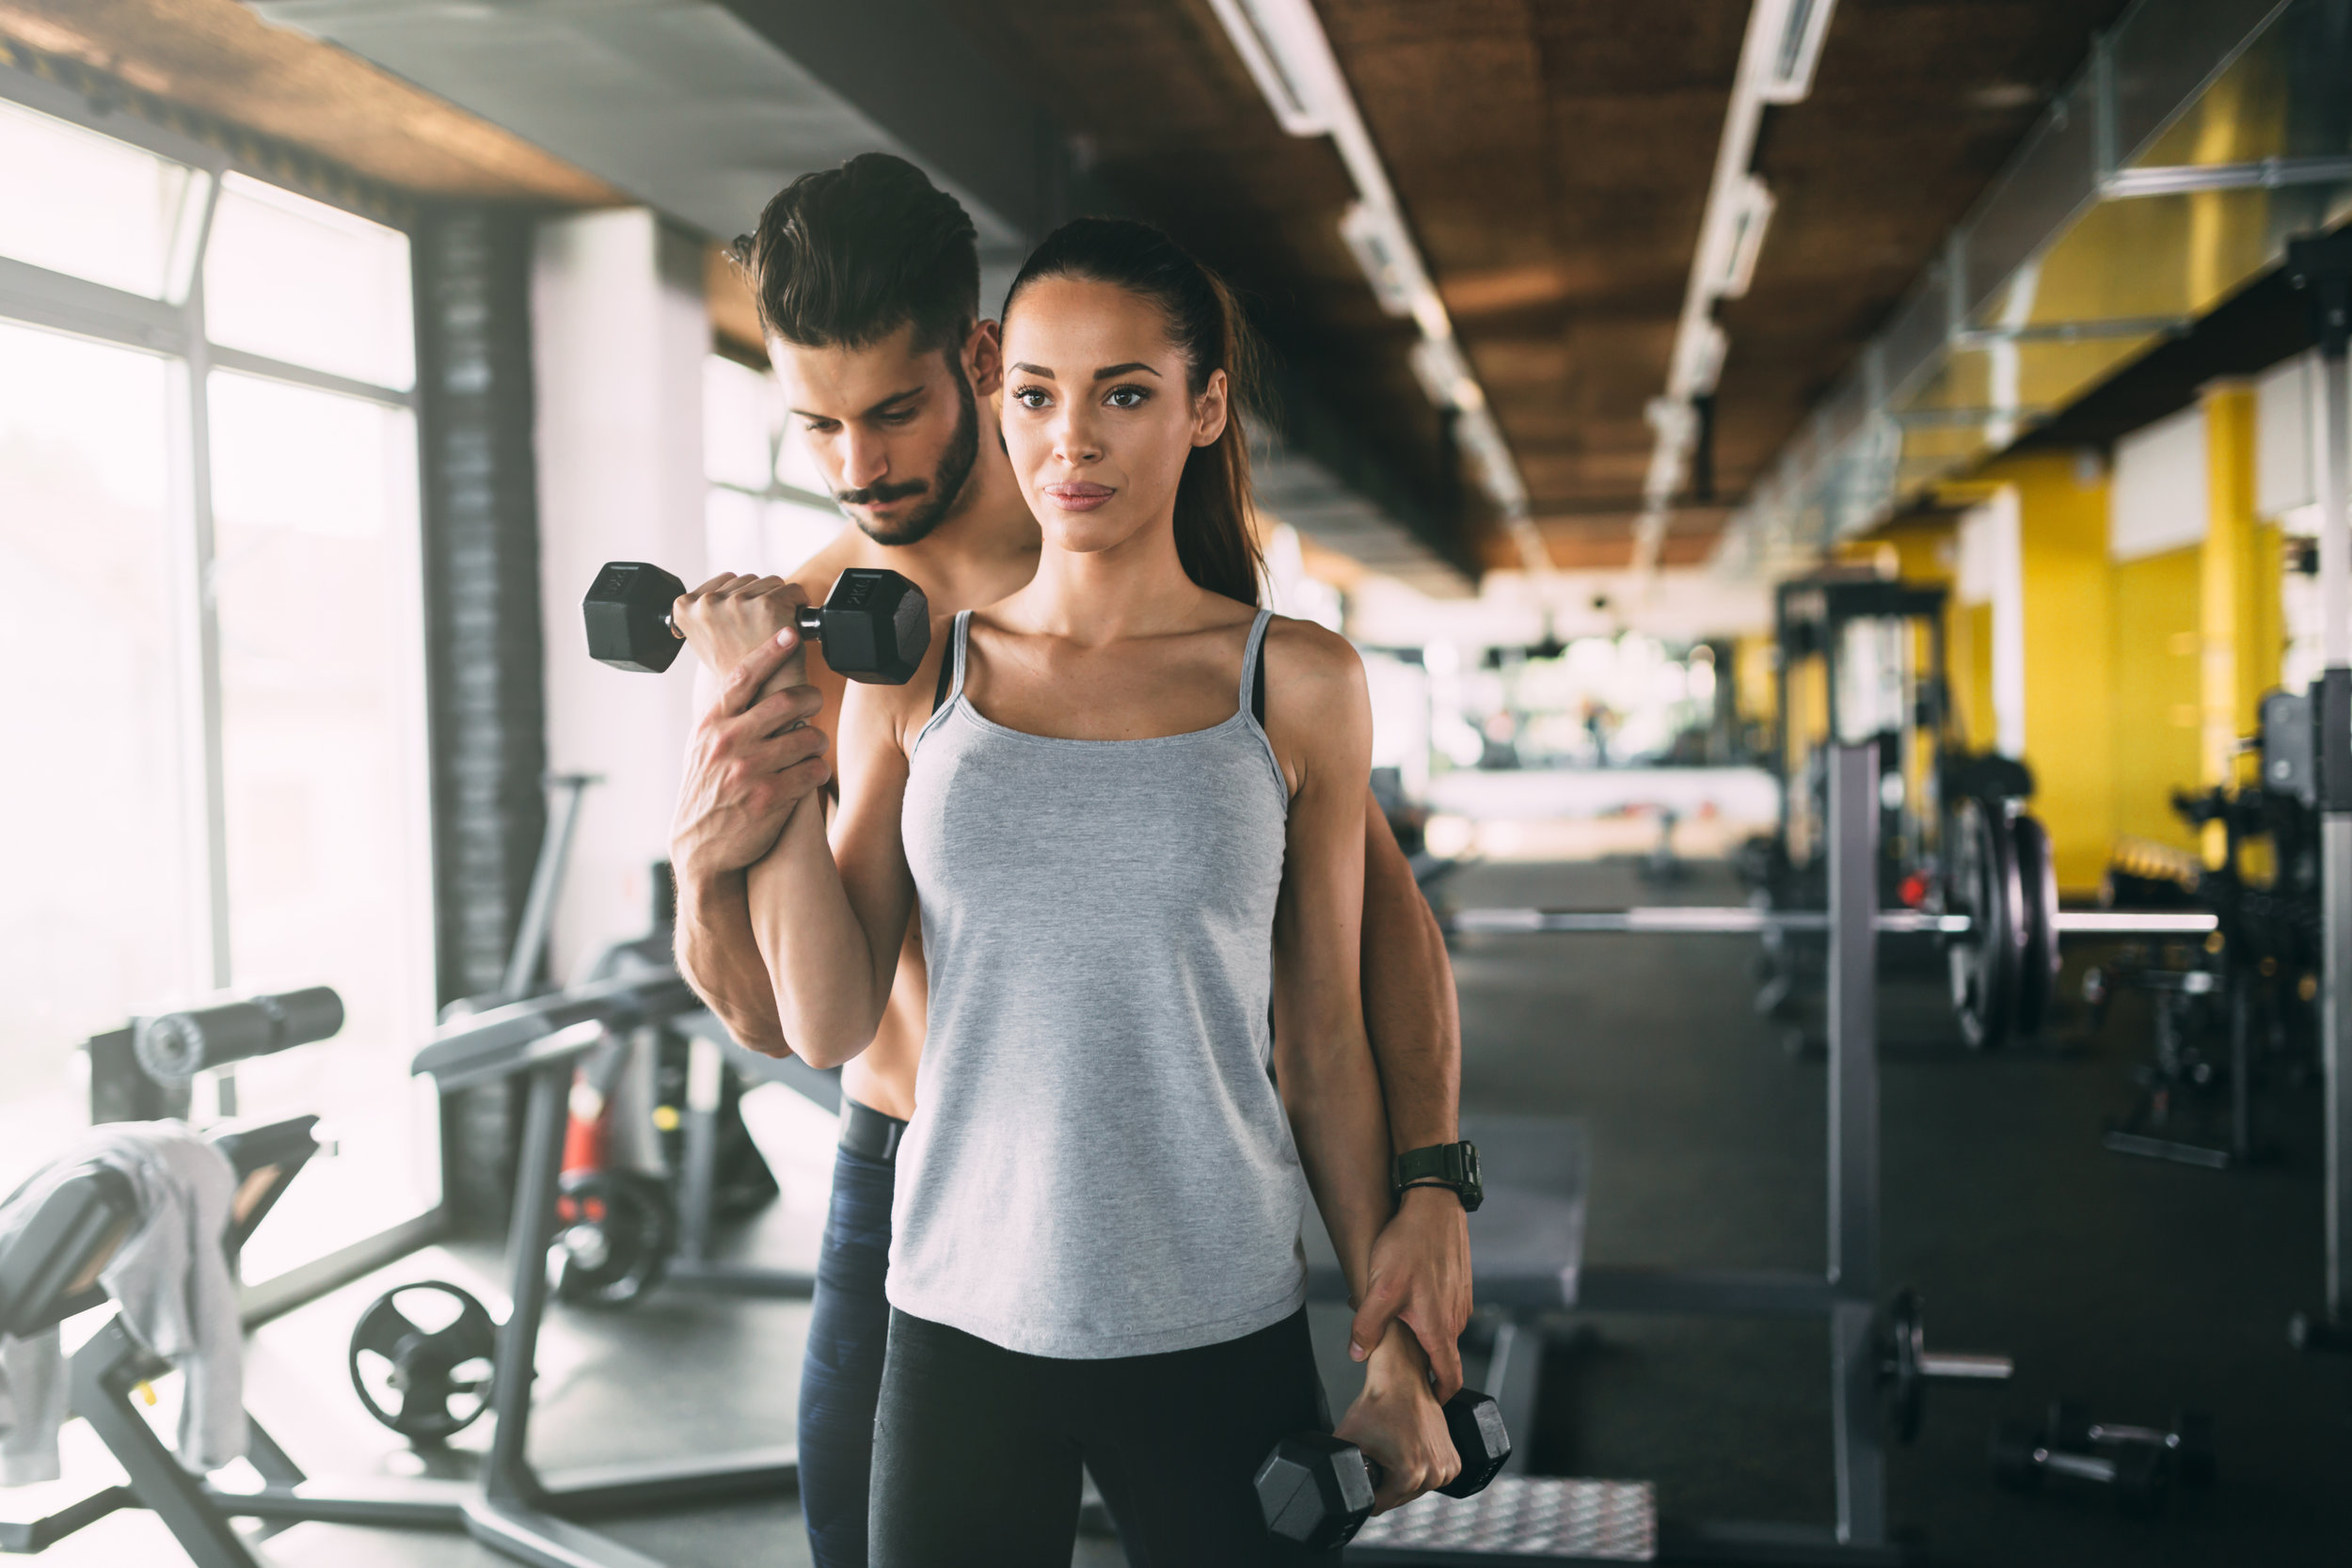 Gym rules - Please follow the Datefit community guidelines outlined below